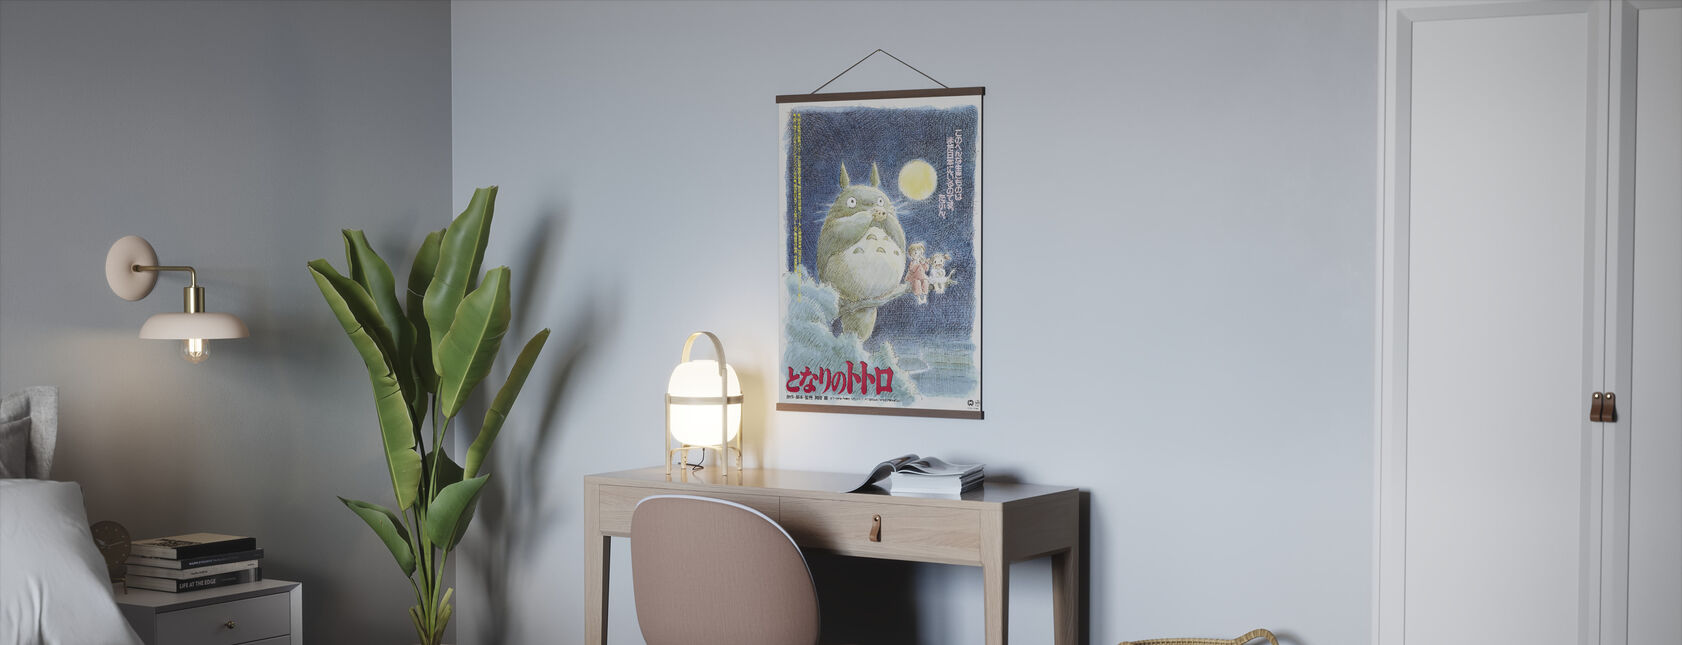 My Neighbor Totoro - Poster - Office